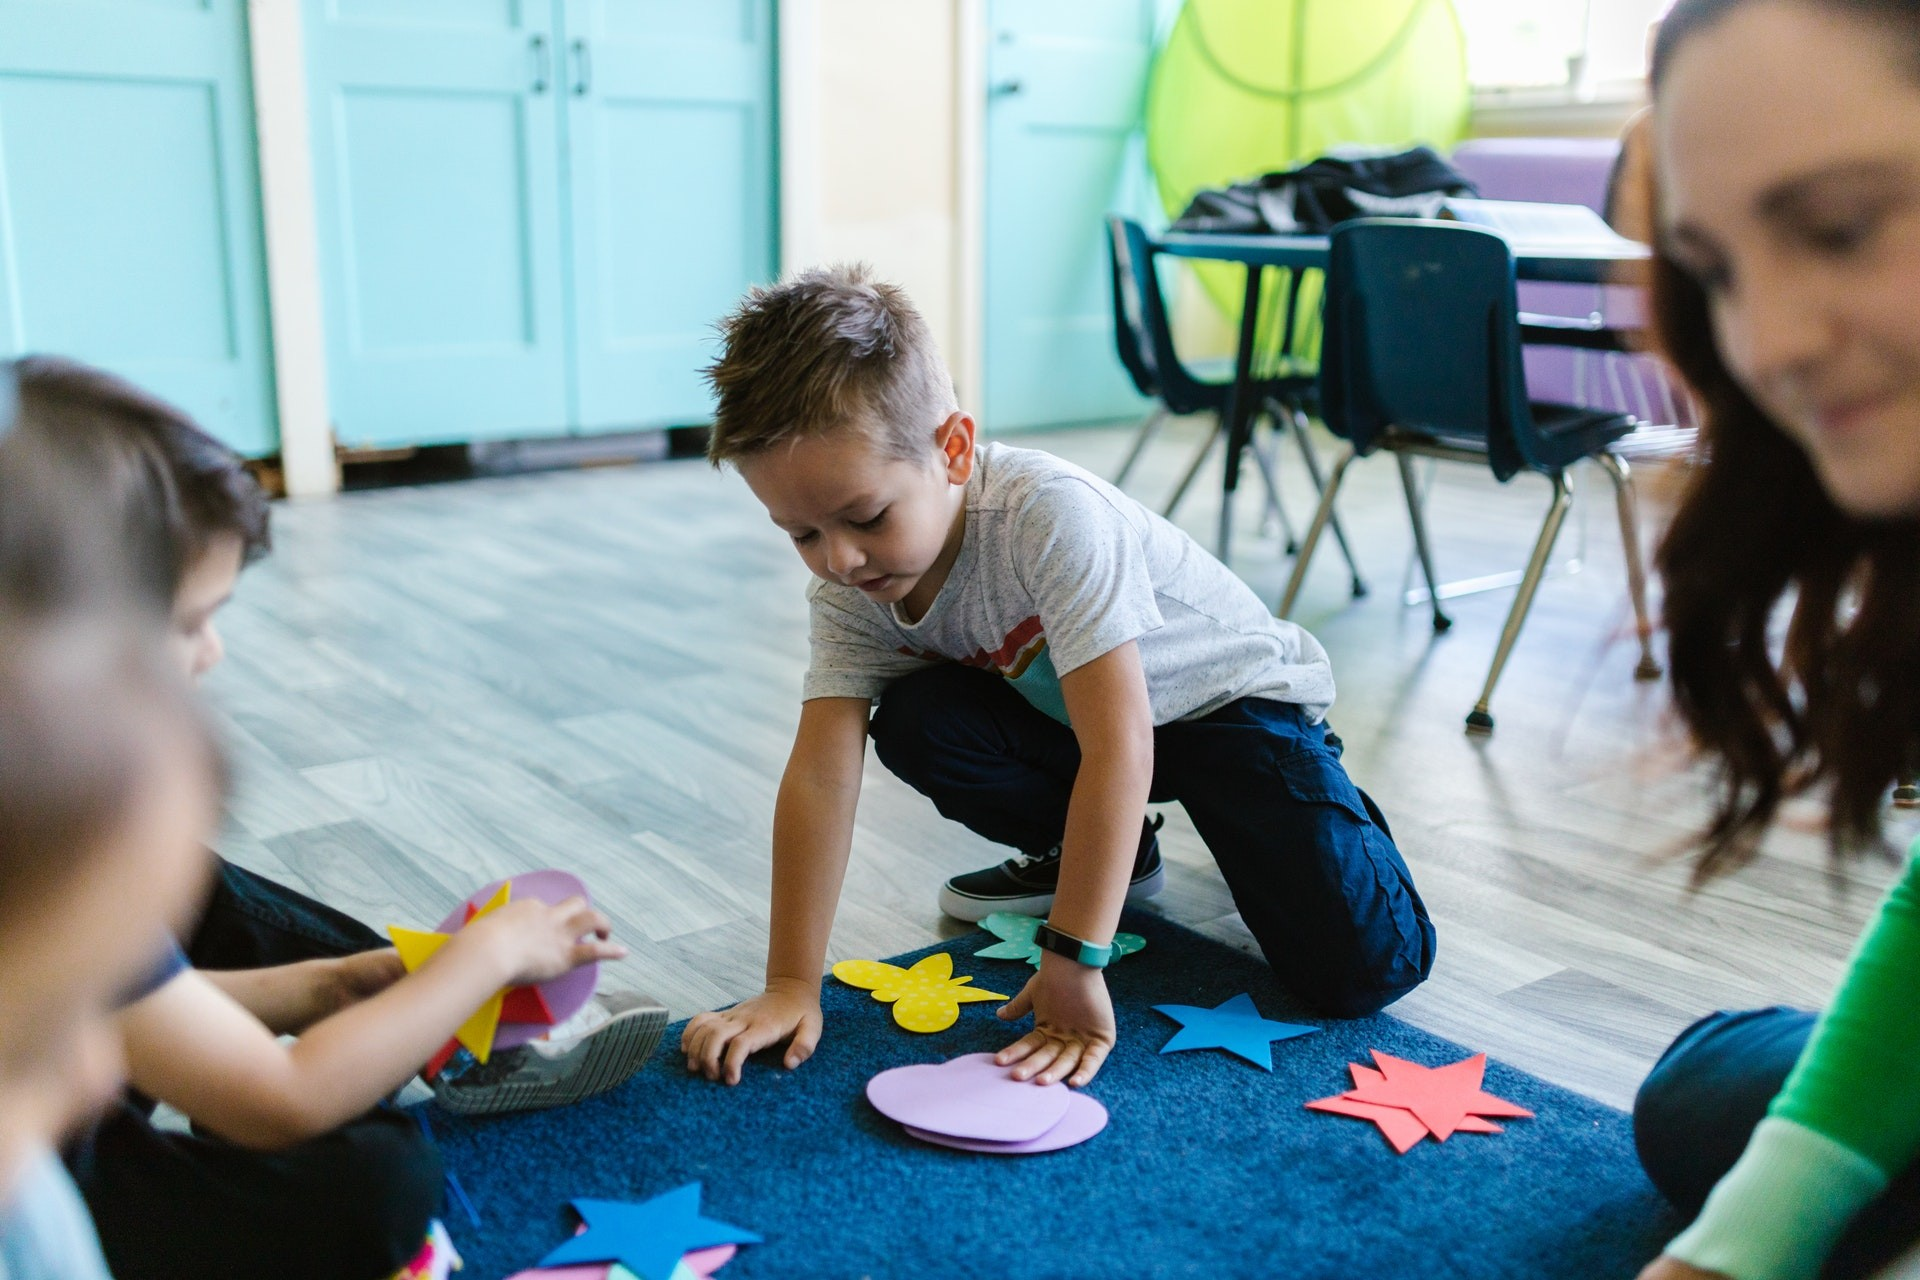 Students play with shapes on a mat in the classroom during a geometry activity